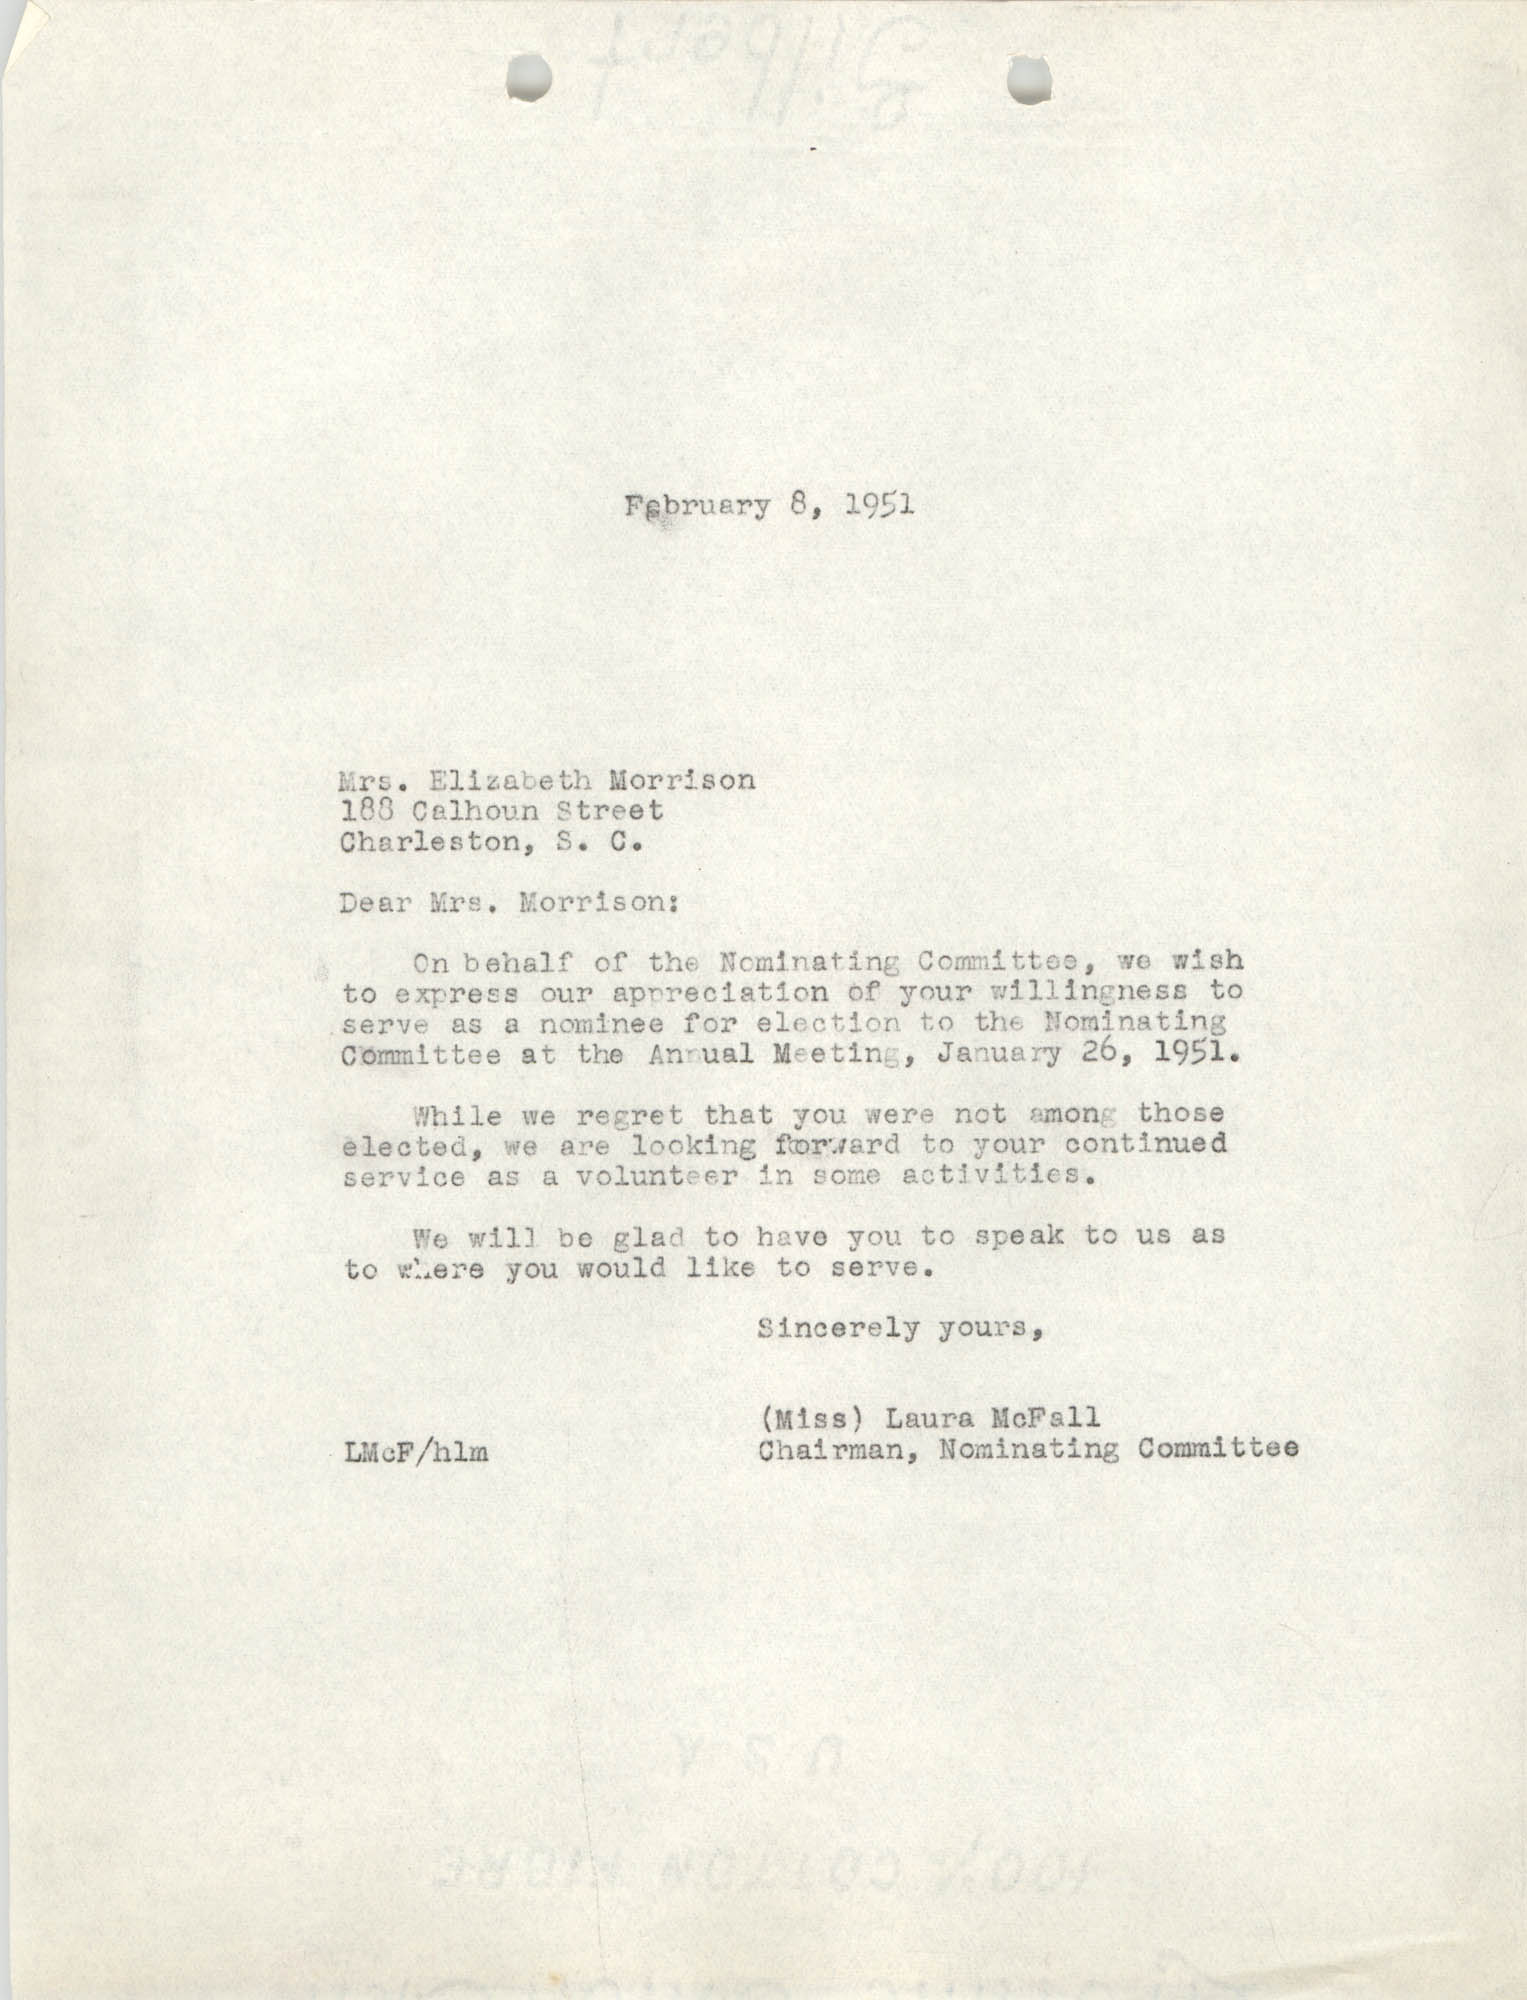 Letter from Laura McFall to Elizabeth Morrison, February 8, 1951